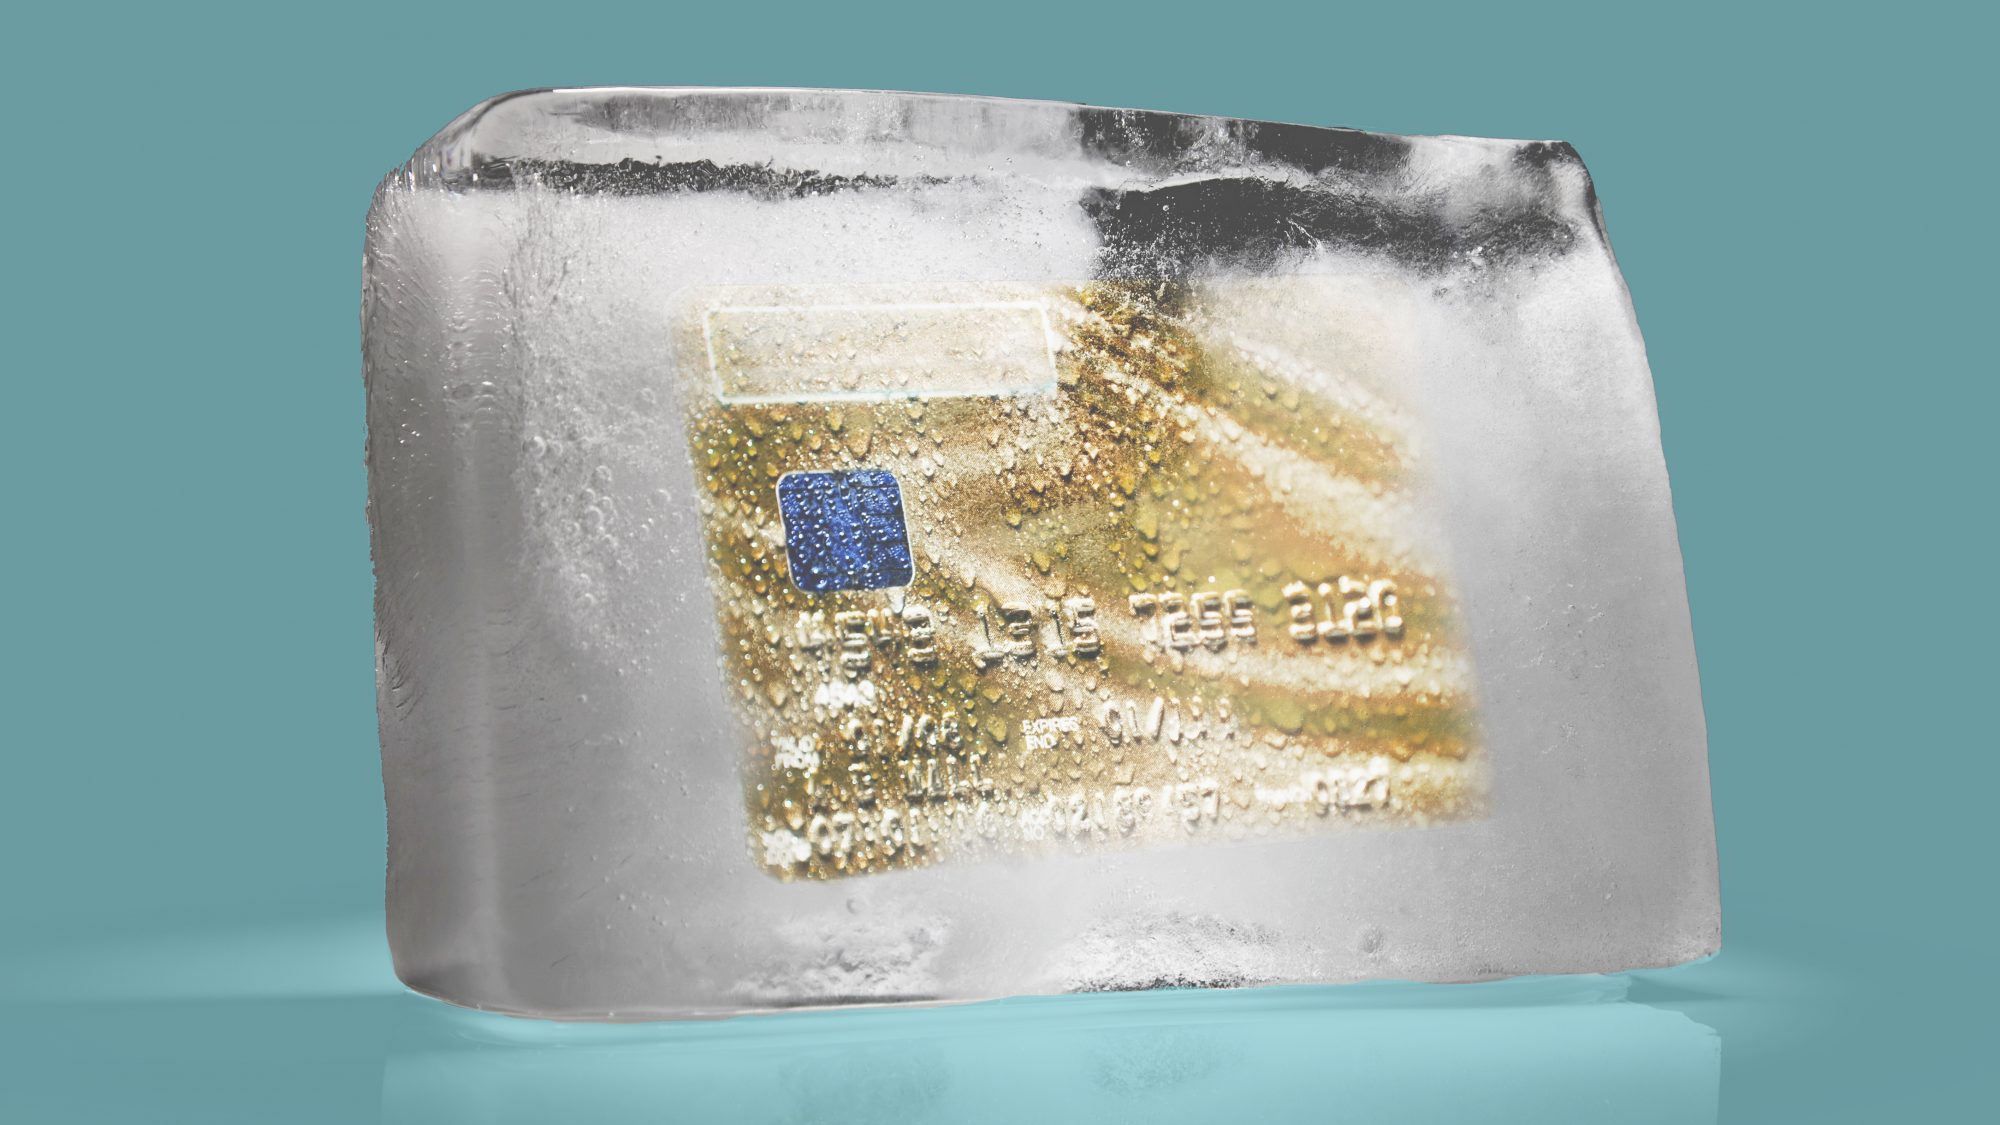 How to freeze credit - learn how to request a credit freeze (credit card on ice)